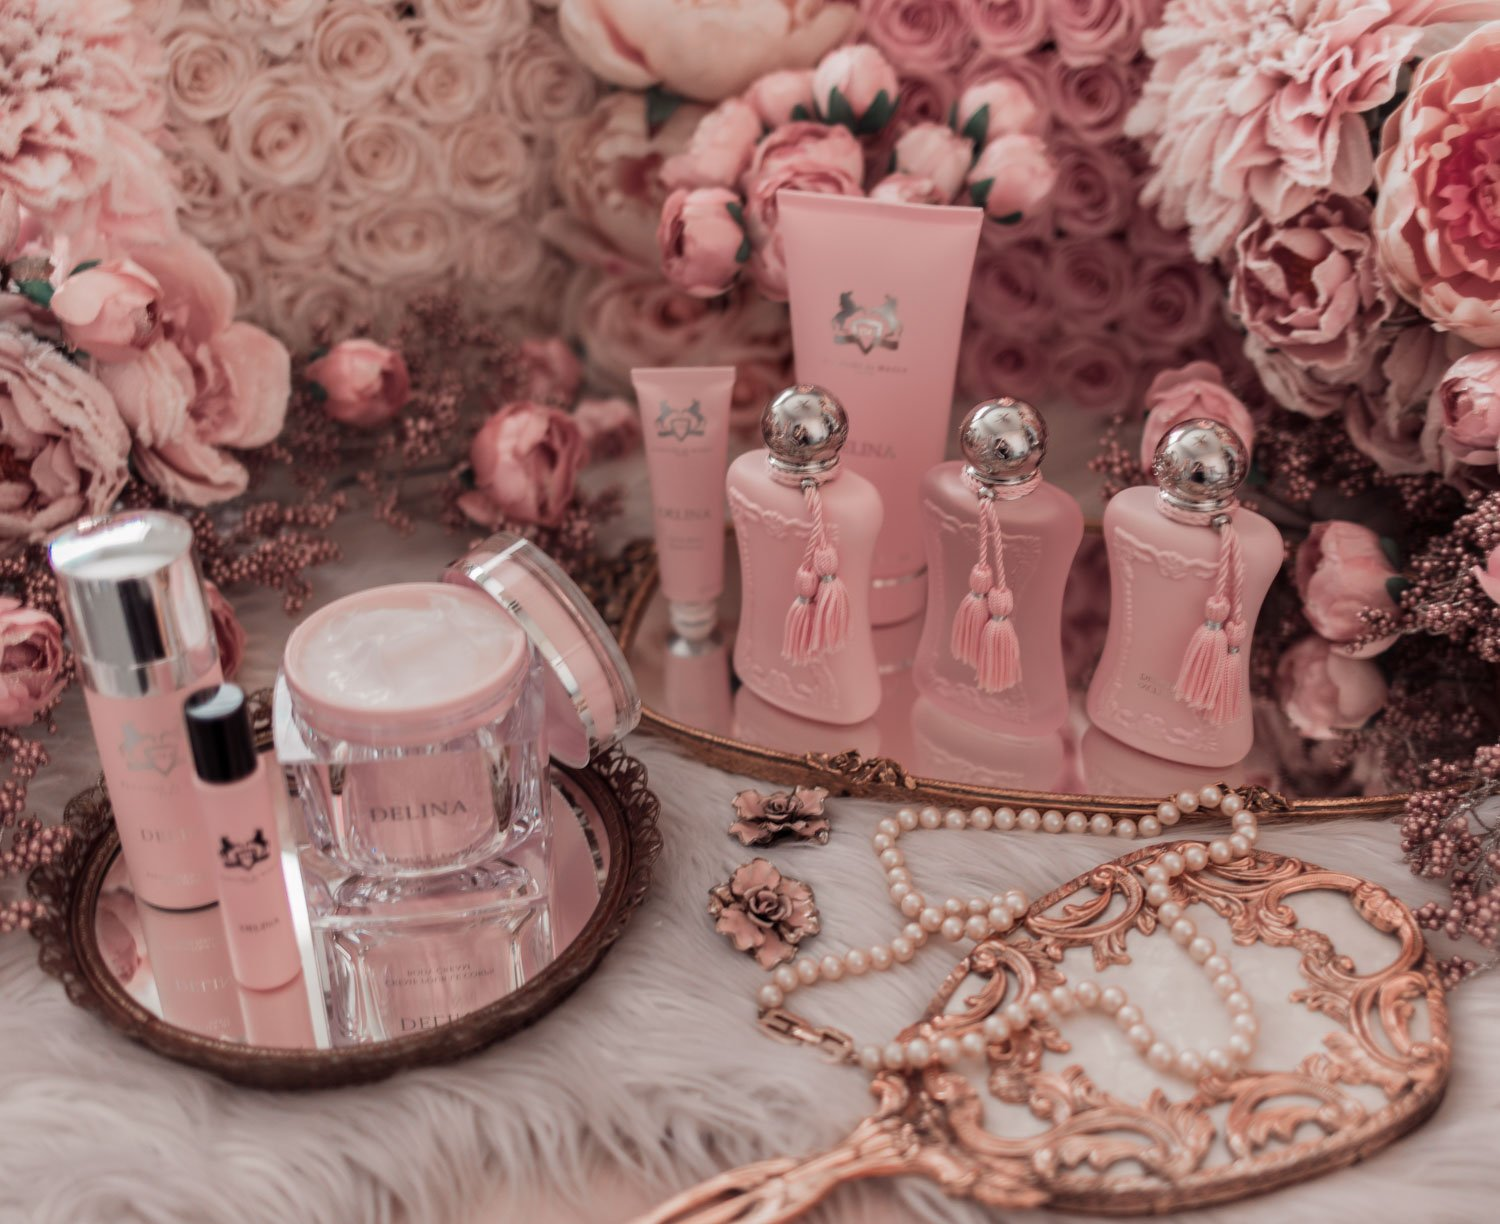 Feminine fashion blogger Elizabeth Hugen of Lizzie in Lace shares the entire Perfums de Marly Delina Collection